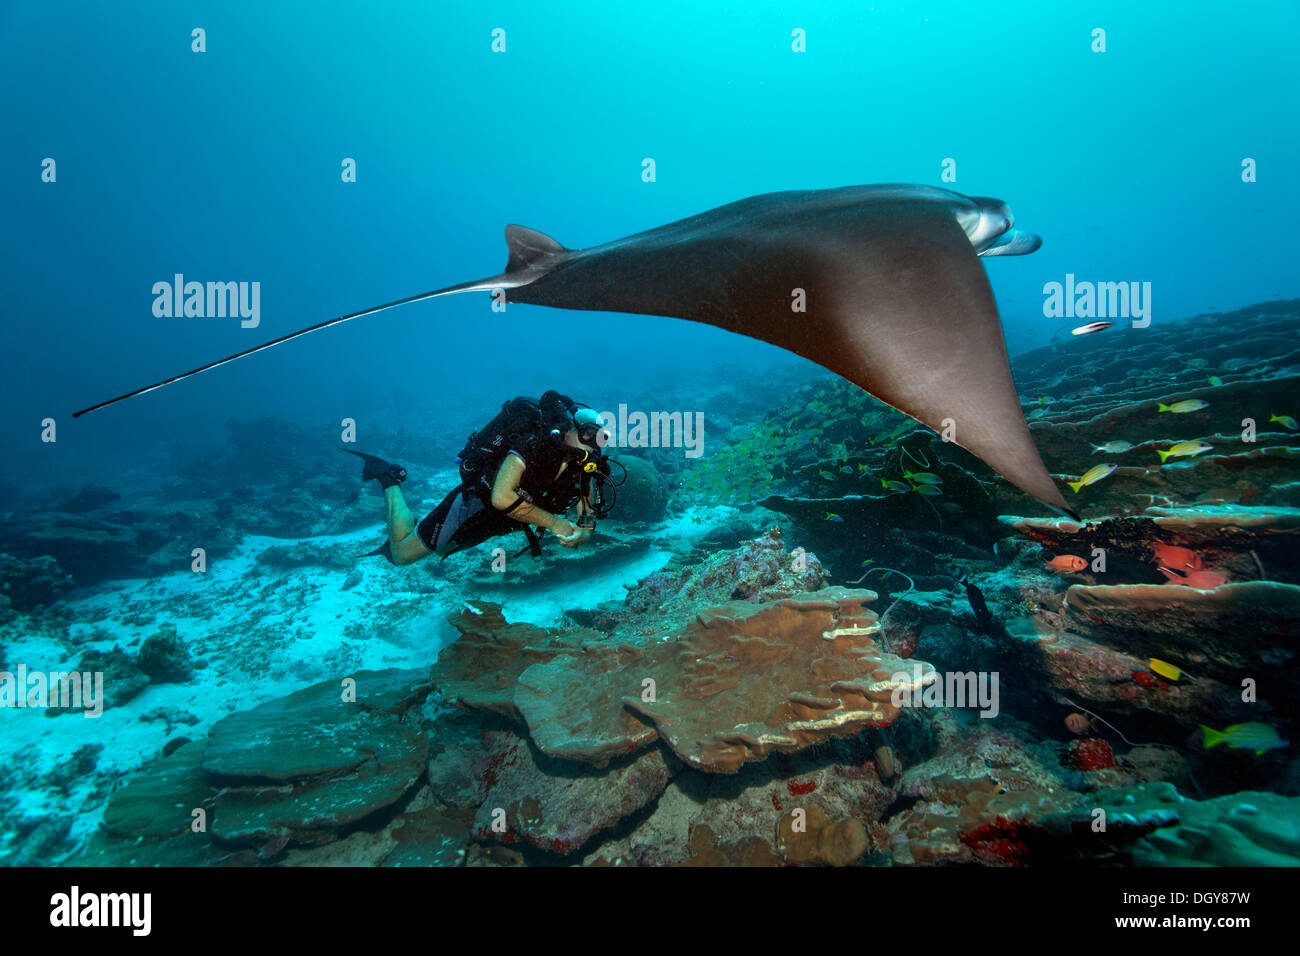 Scuba diver with a closed circuit rebreather Buddy Inspiration observing a Reef Manta Ray (Manta alfredi), technical diving - Stock Image